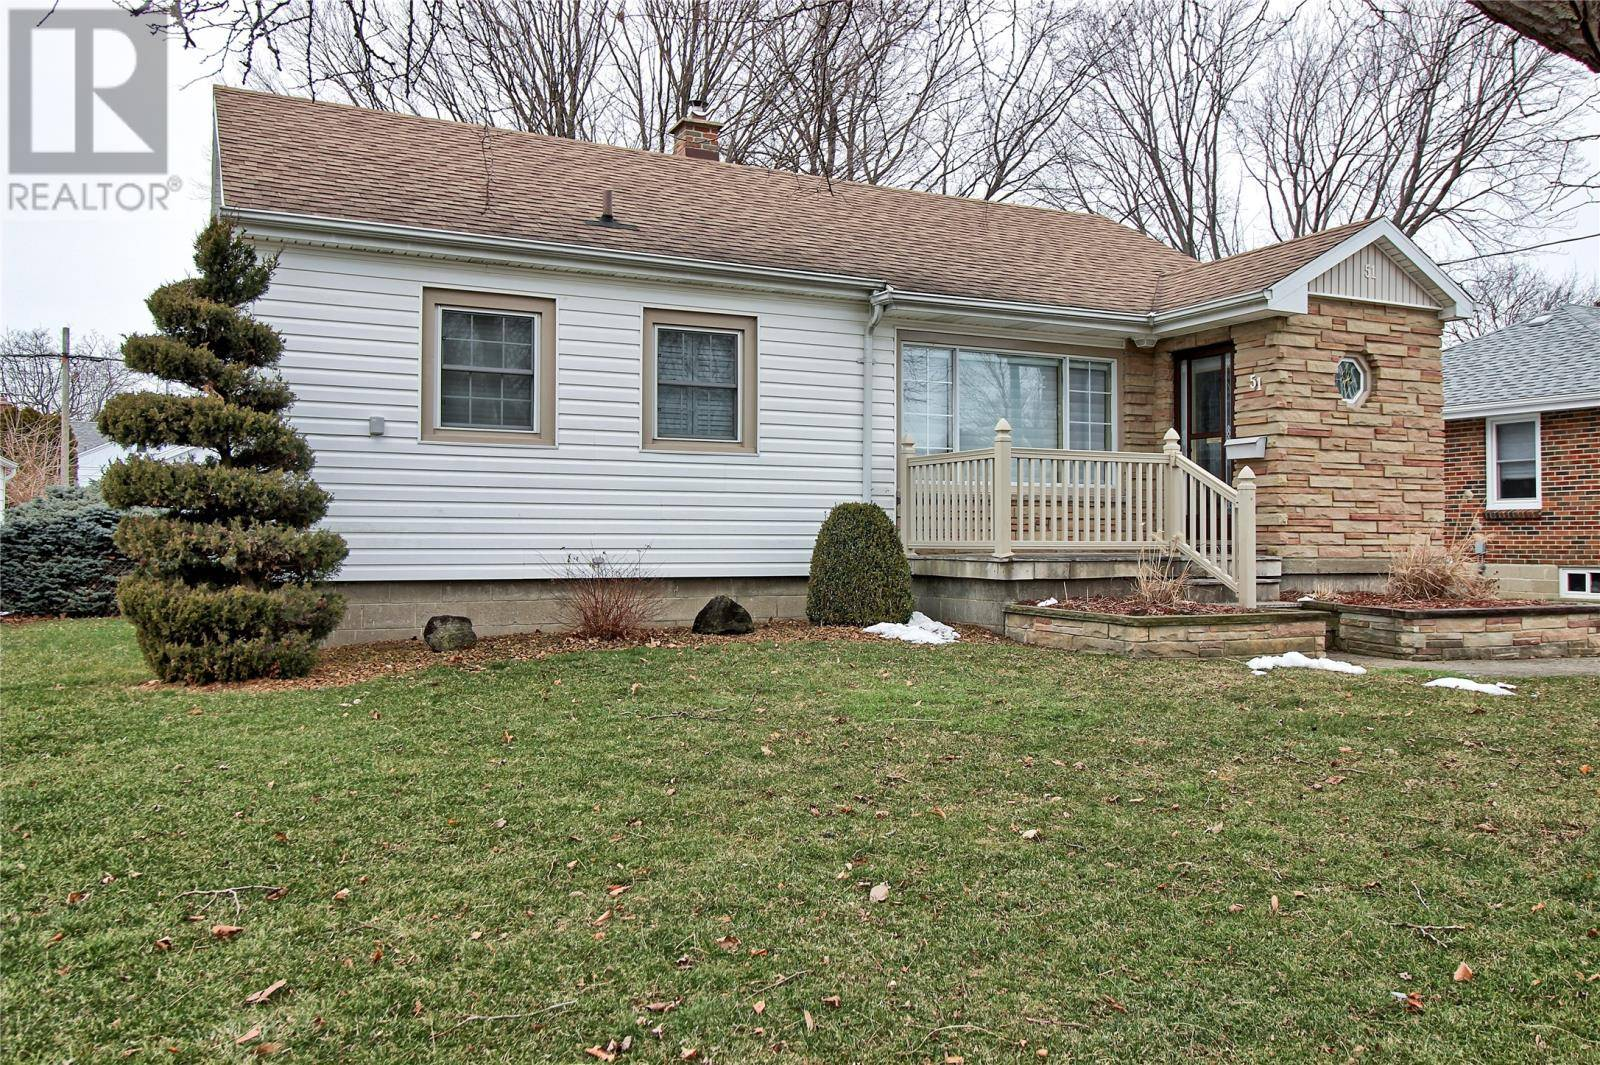 House for sale at 51 Mcgeorge Ave Chatham Ontario - MLS: 20001689